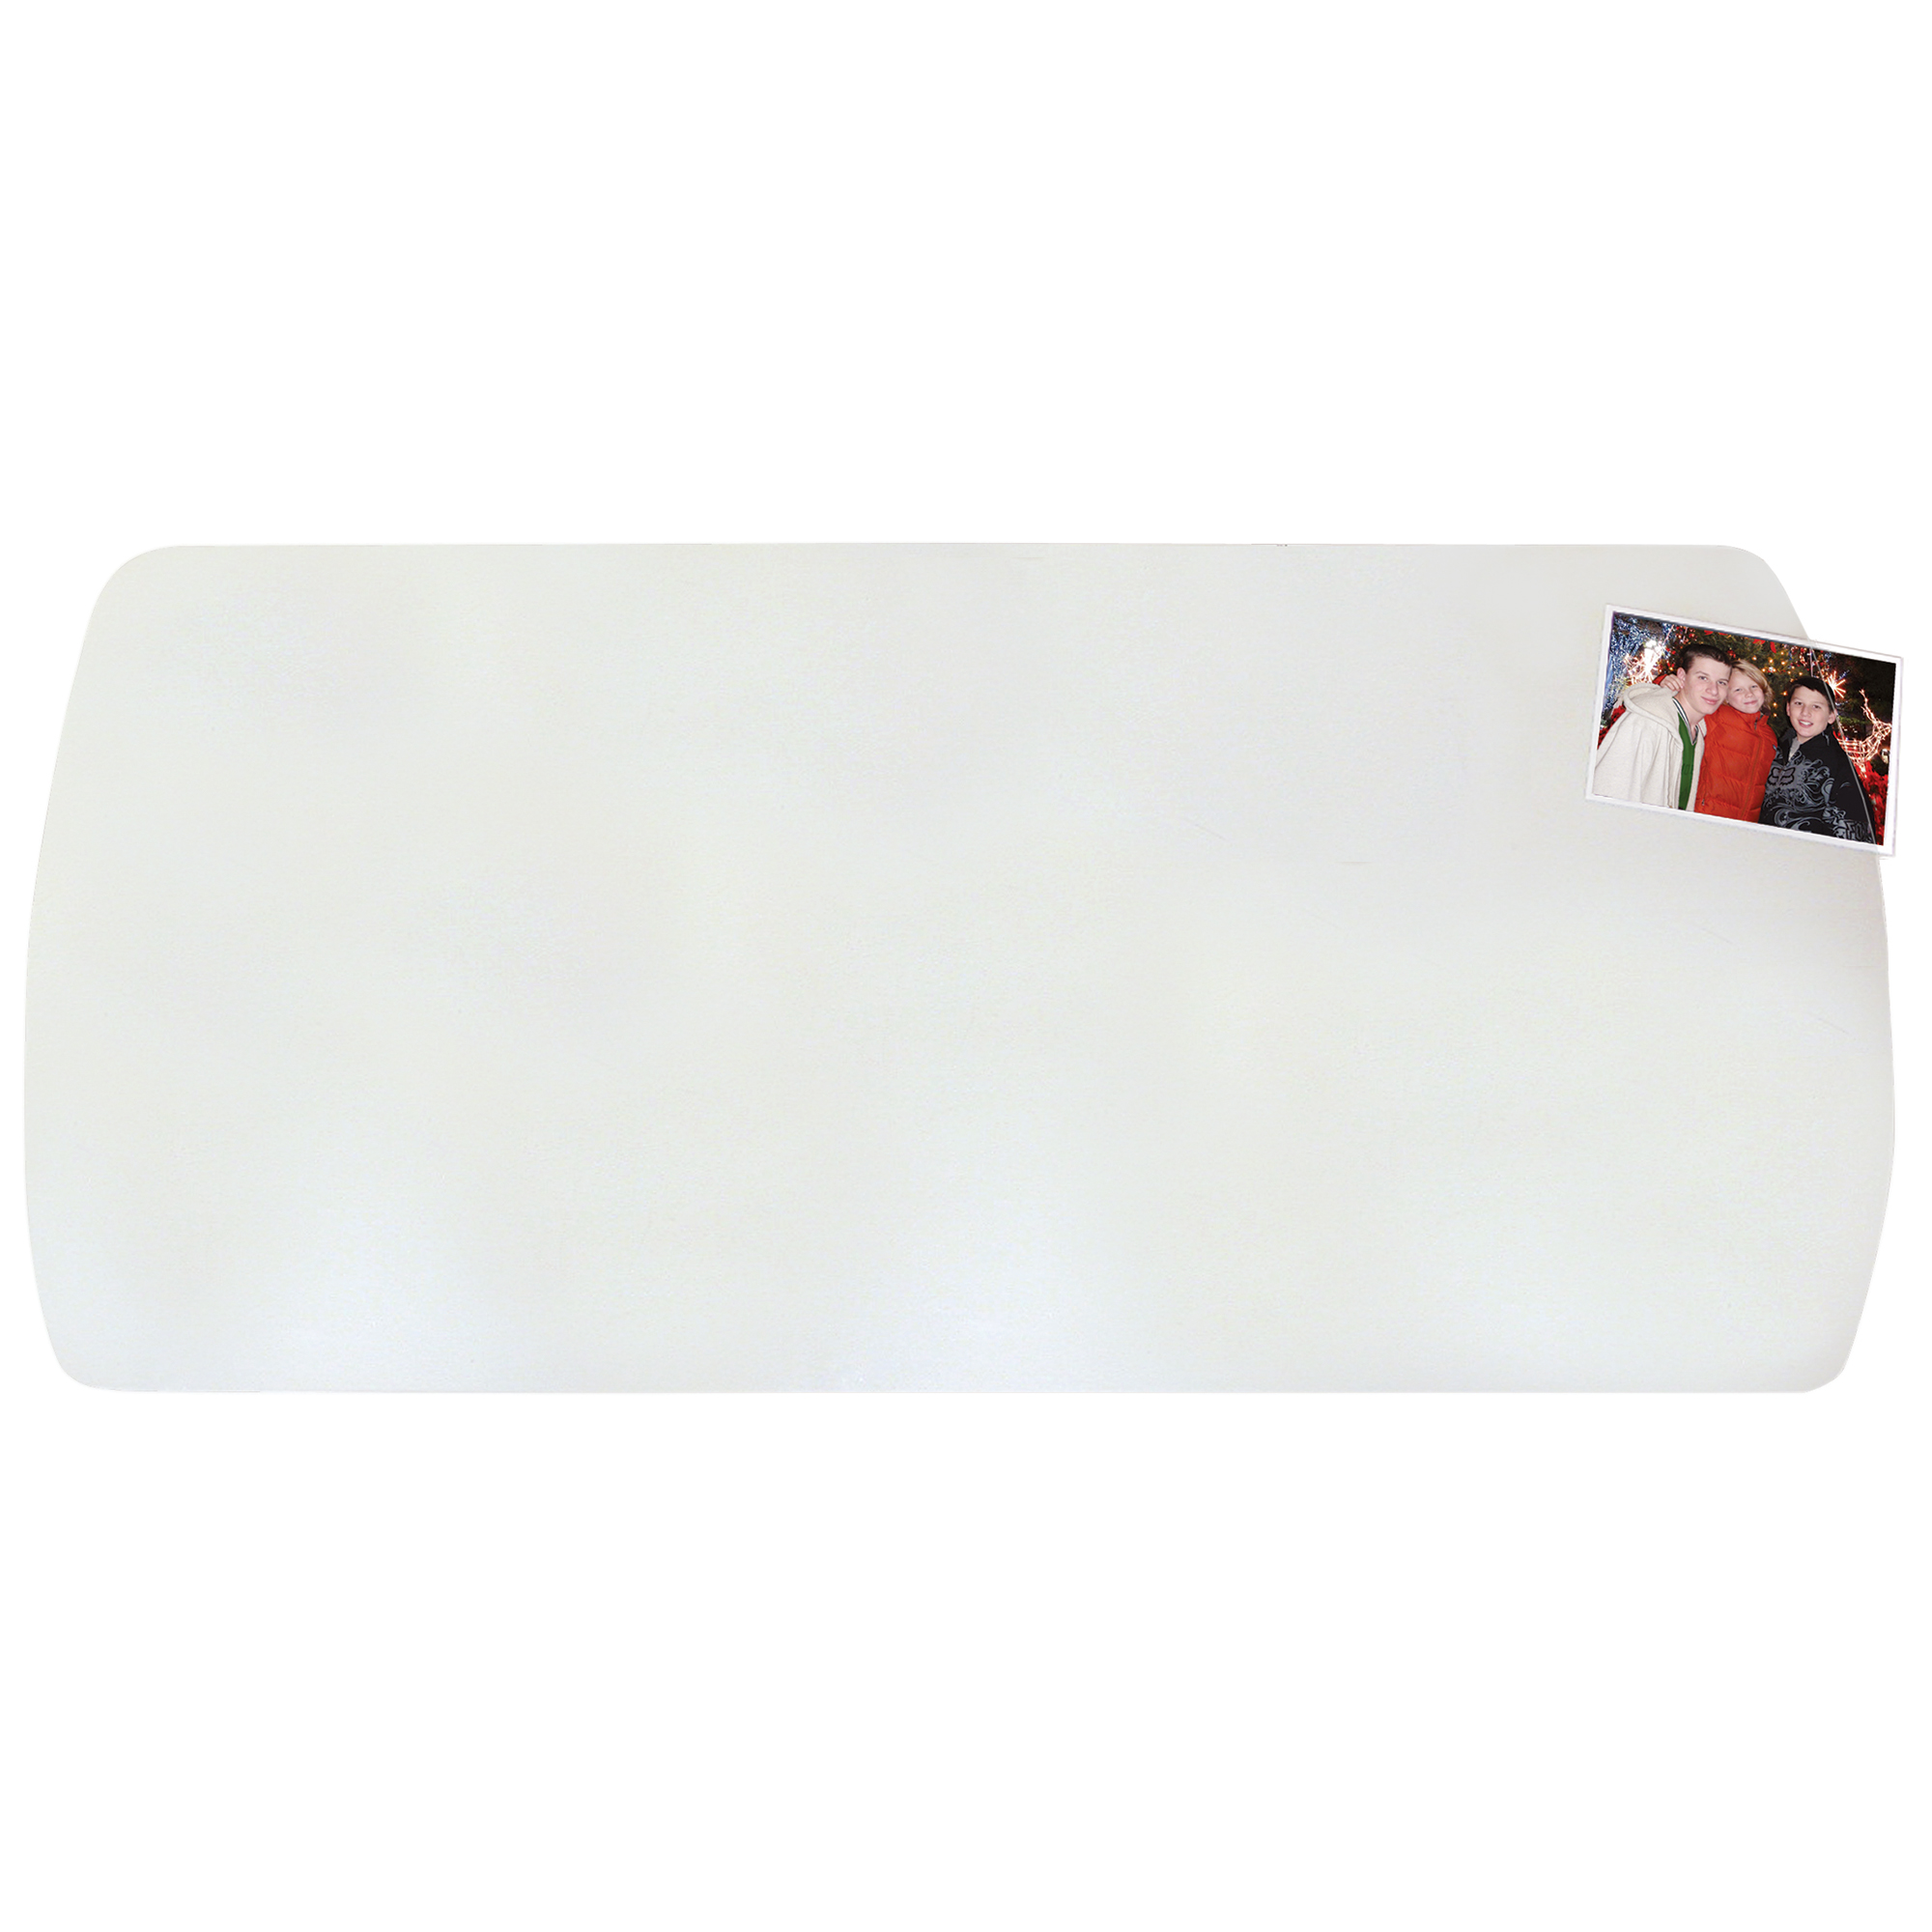 """14"""" x 30"""" Krystal View Desk Pad Curved for Workstations, Clear by Artistic Products"""